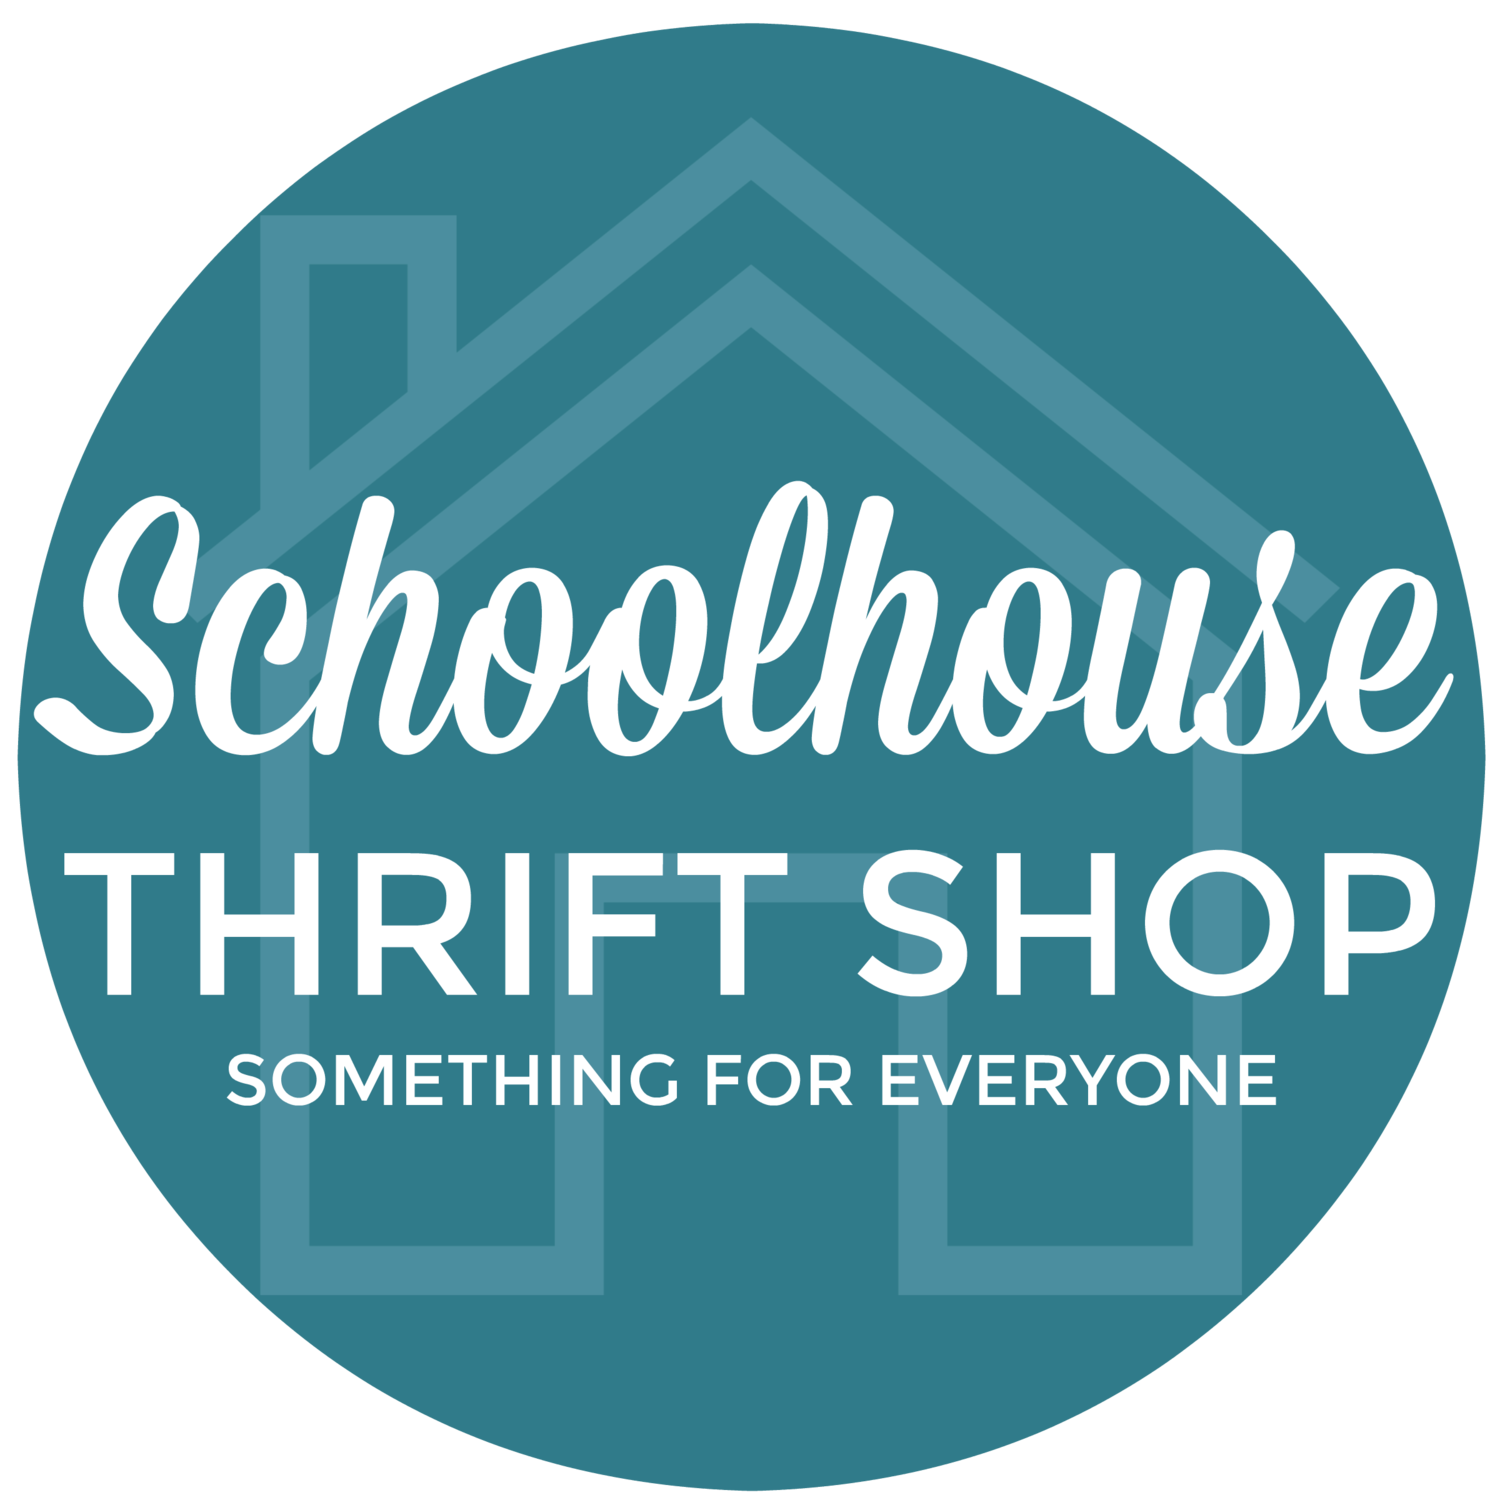 Schoolhouse Thrift Shop at Rio